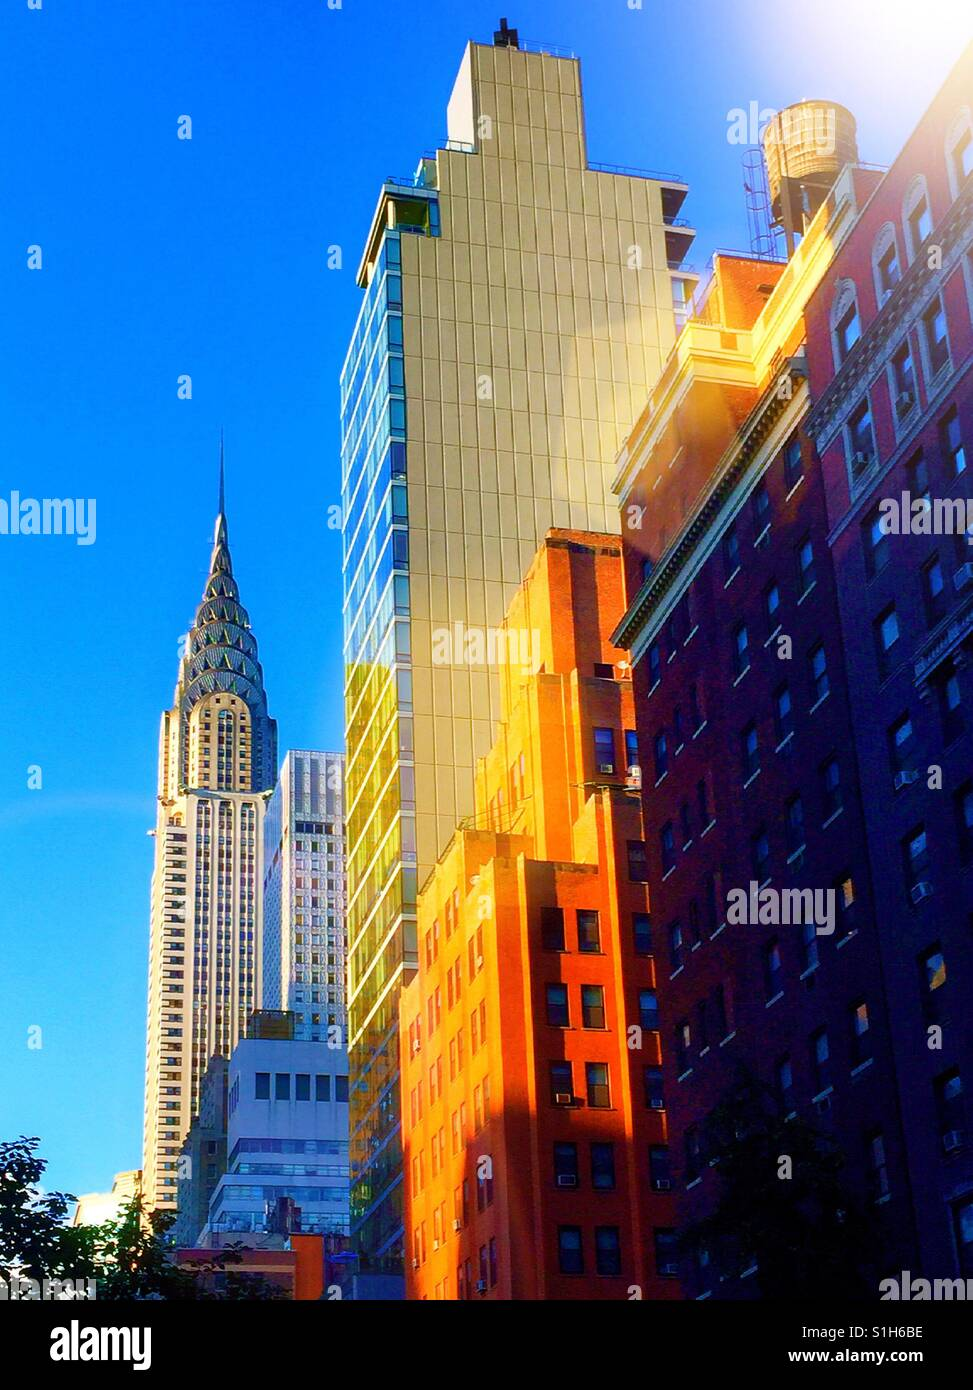 Vue sur le Chrysler building à north sur Lexington Avenue, Manhattan, New York, USA. Photo Stock